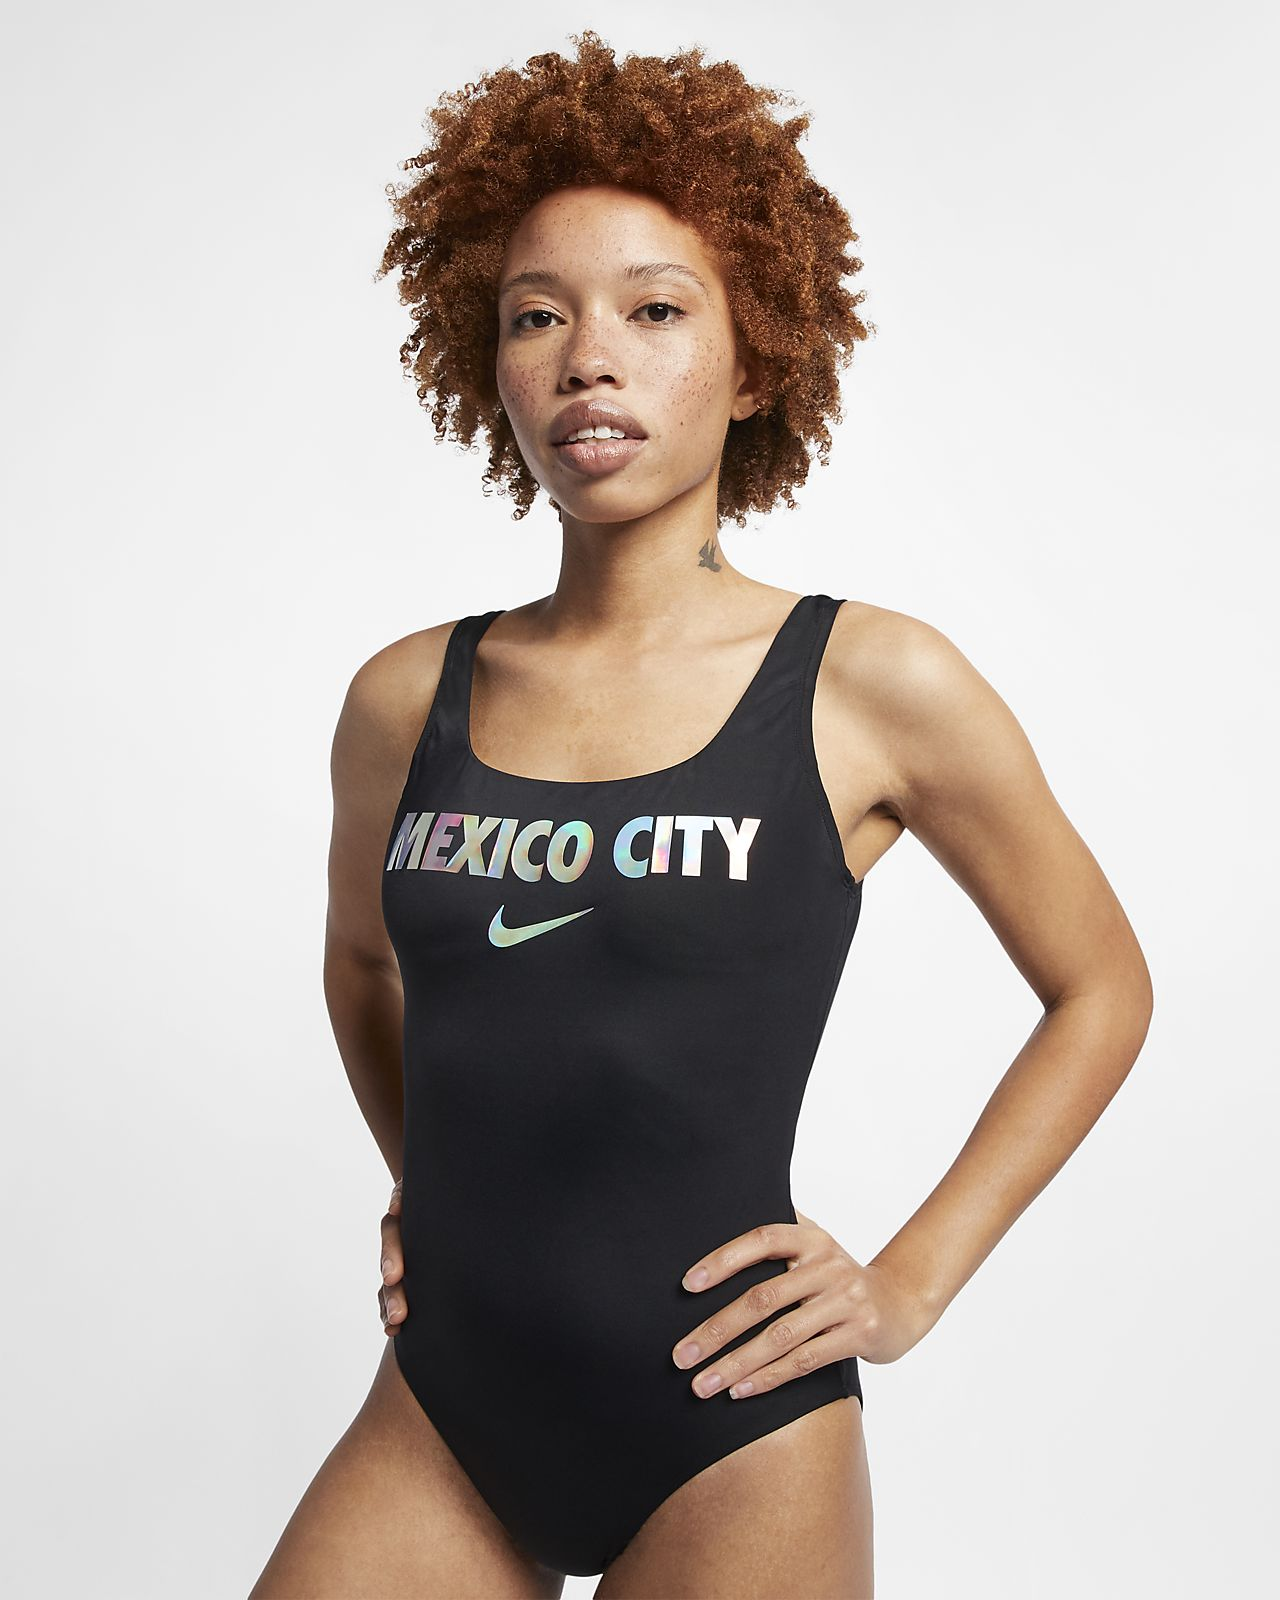 Nike Swim City Series (Mexico City) einteiliger Badeanzug für Damen